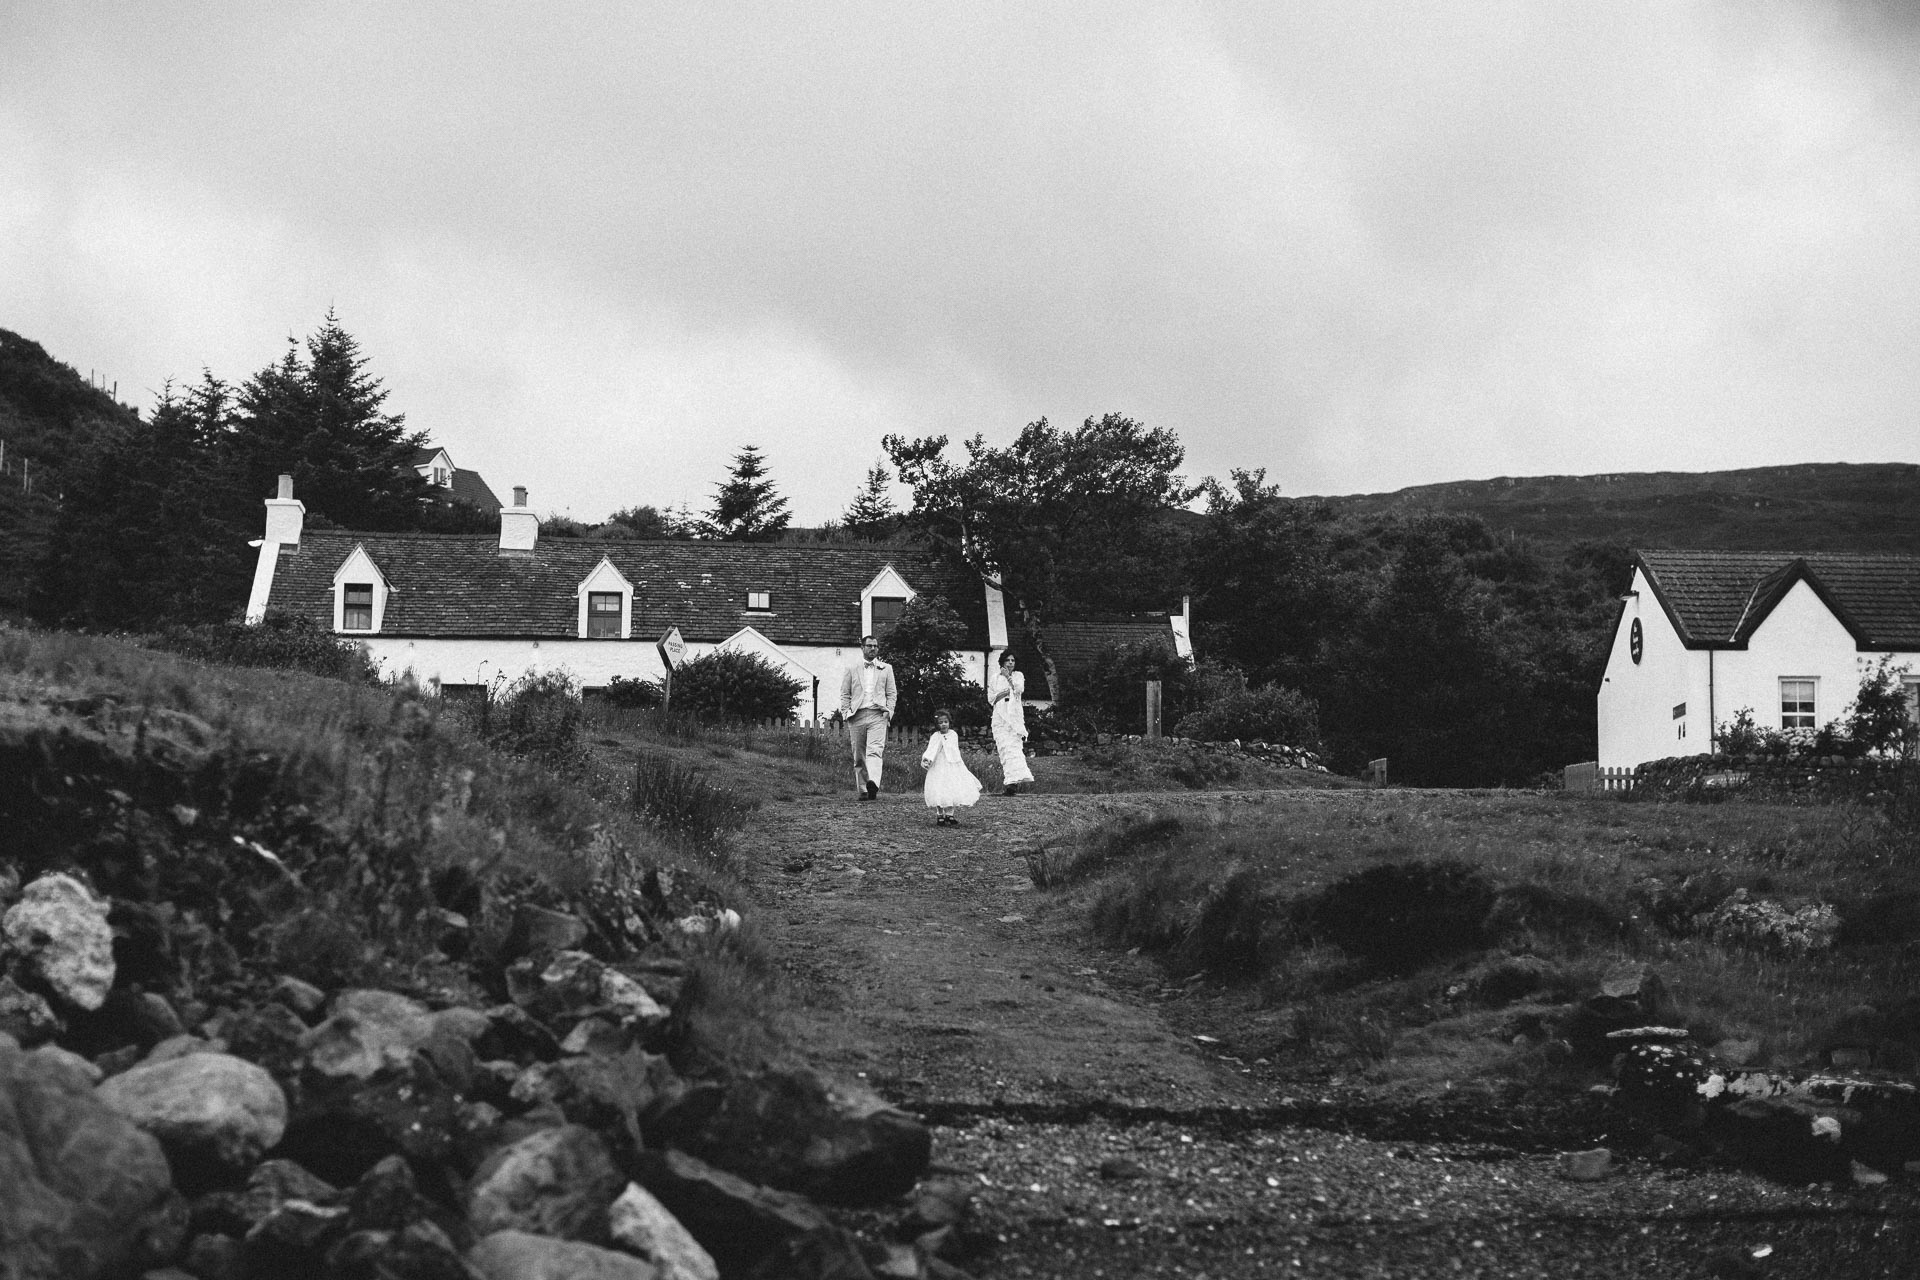 Megan_Matt_Elopement_IntimateWedding_Scotland_IsleOfSkye_JeanLaurentGaudy_111